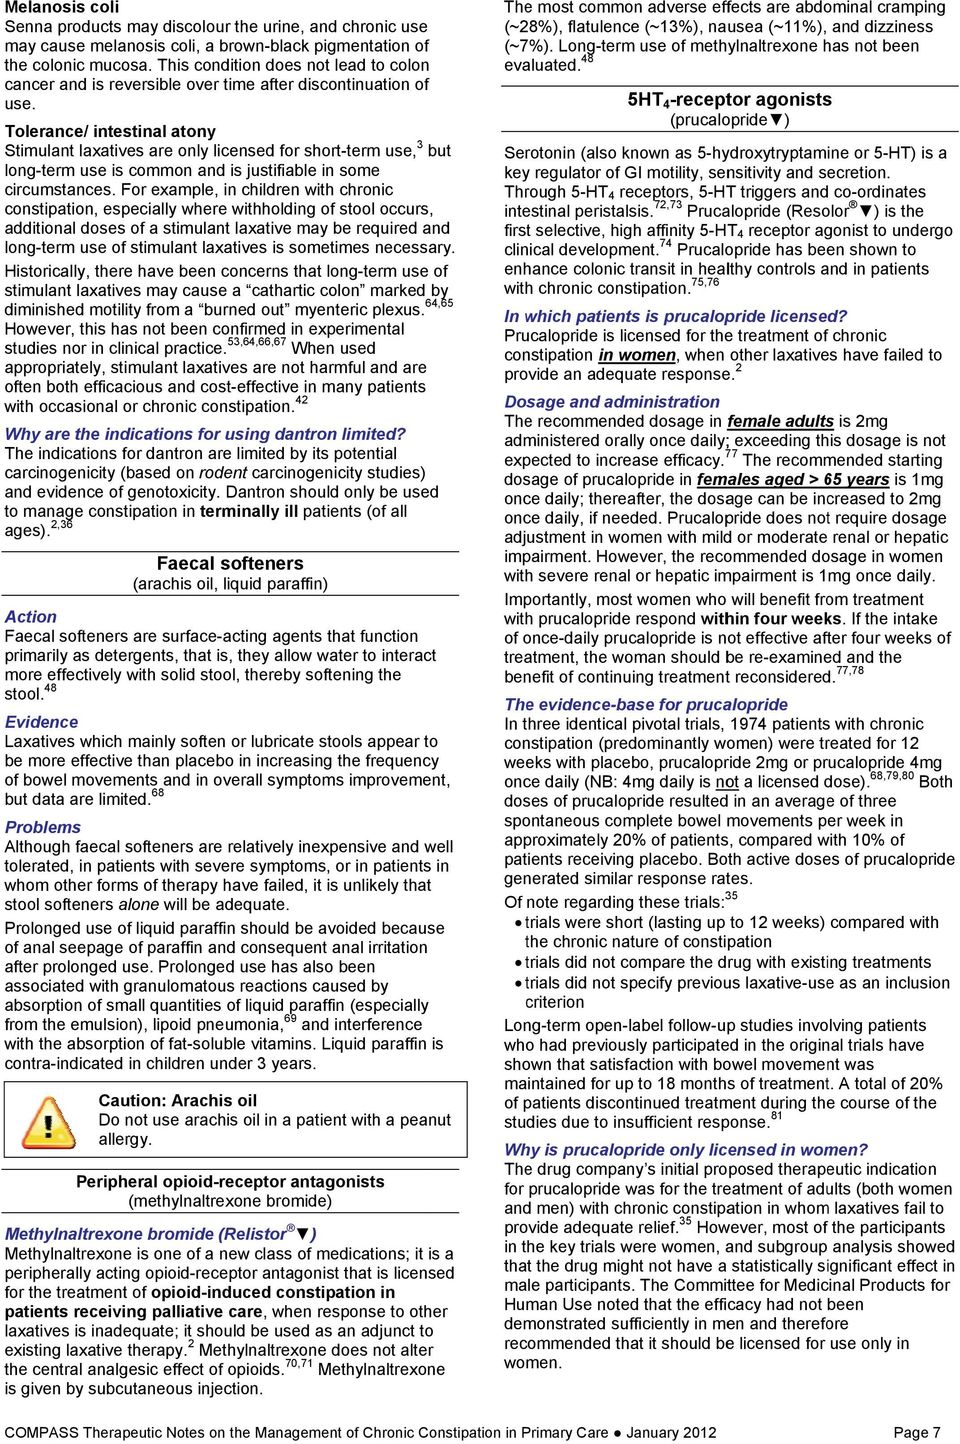 COMPASS Therapeutic Notes on the Management of Chronic